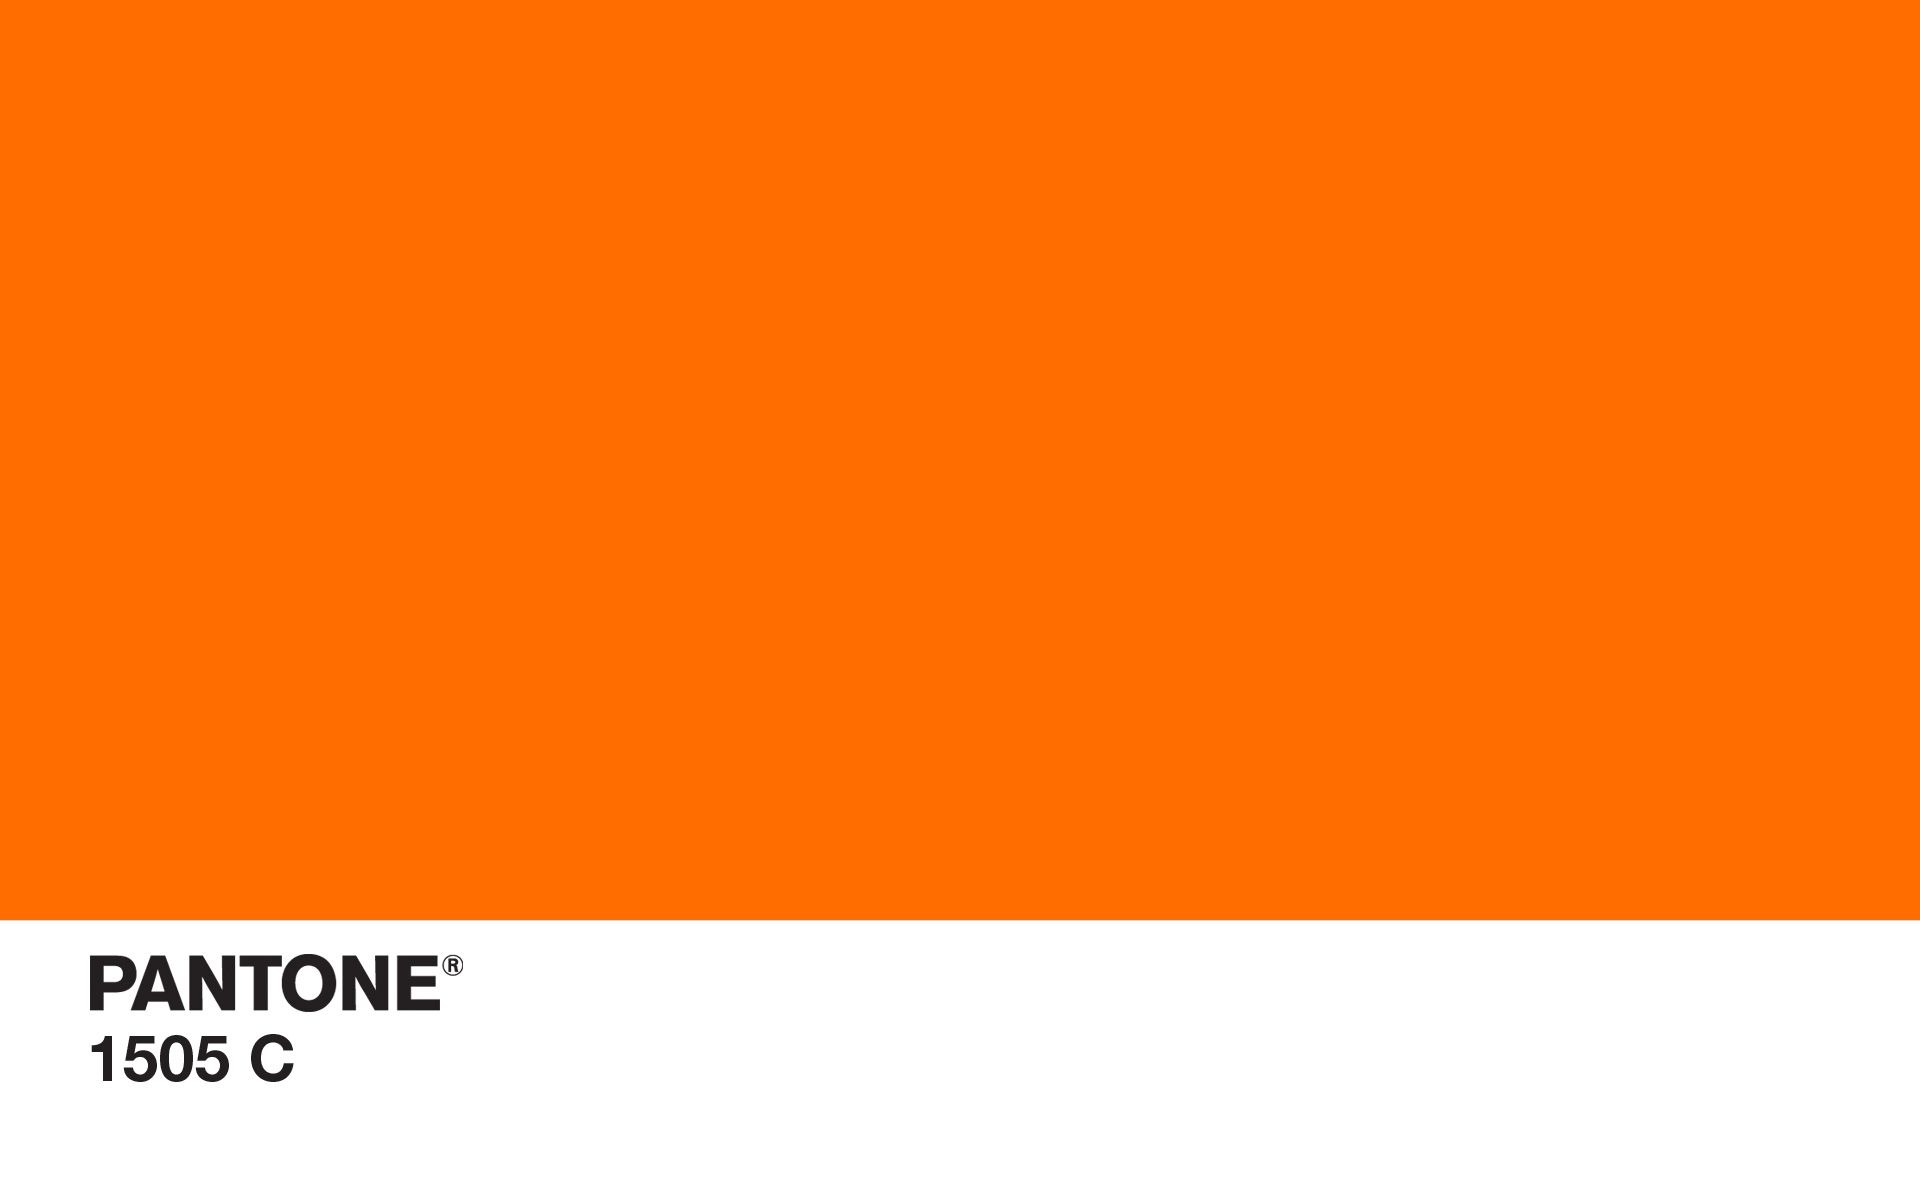 Wikipedia Says Orange Is The Colour Of Saffron Carrots Pumpkins And Apricots I Think It S Pantone 1505 Orange Wallpaper Pantone Orange Pantone